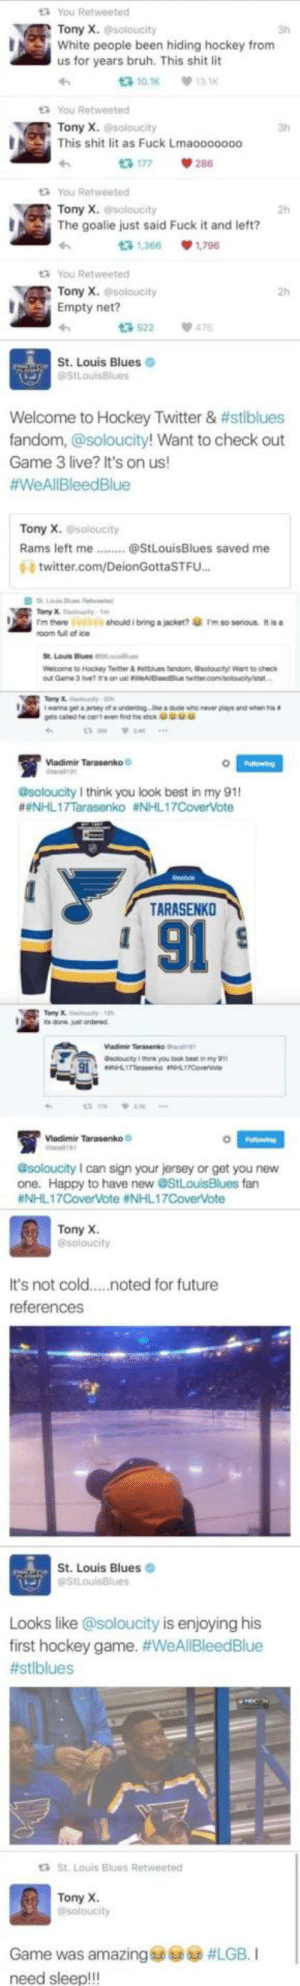 This guy is living his dream by K7NGComment MORE MEMES: You Retweeted  Tony X. @soloucity  3h  White people been hiding hockey from  us for years bruh. This shit lit  다10.1K  13K  You Retweeted  Tony X. @soloucity  This shit lit as Fuck Lmaooooooo  3h  다 177  286  You Retweeted  Tony X. esoloucity  2h  The goalie just said Fuck it and left?  3 1,366 1,796  You Retweeted  Tony X.soloucity  다522  St. Louis Blues O  2h  Empty net?  475  Welcome to Hockey Twitter & #stblues  fandom, @soloucity! Want to check out  Game 3 live? It's on us!  #WeAll Bleed Blue  on  us!  Tony X. soloucity  昏 twitter.com/DeionGottaSTFu..  rm there 977 should i bring alacket?傘rm so serous. Itisa  room fuil ofice  Weco  าย to Hockey Twitter & nttues tanom, osotootyl wart to check  Vladimir Tarasenko  @soloucity I think you look best in my 91  #eNHL17Tarasenko #NHL17Covente  TARASENKO  L 91  soloucity you look best nmy  iadimir Tarasenko  @soloucity I can sign your jersey or get you new  one. Happy to have new @StLouisBlues fan  #NHLI 7CoverVote #NHL 1 7CoverVote  Tony X  It's not cold....noted for future  references  St. Louis Blues  Looks like @soloucity is enjoying his  first hockey game. #WeAllBleedBlue  #stiblues  St. Louis Blues Retweeted  Tony X  Game was amazing@sp6à #LGB. I  need sleep!!! This guy is living his dream by K7NGComment MORE MEMES